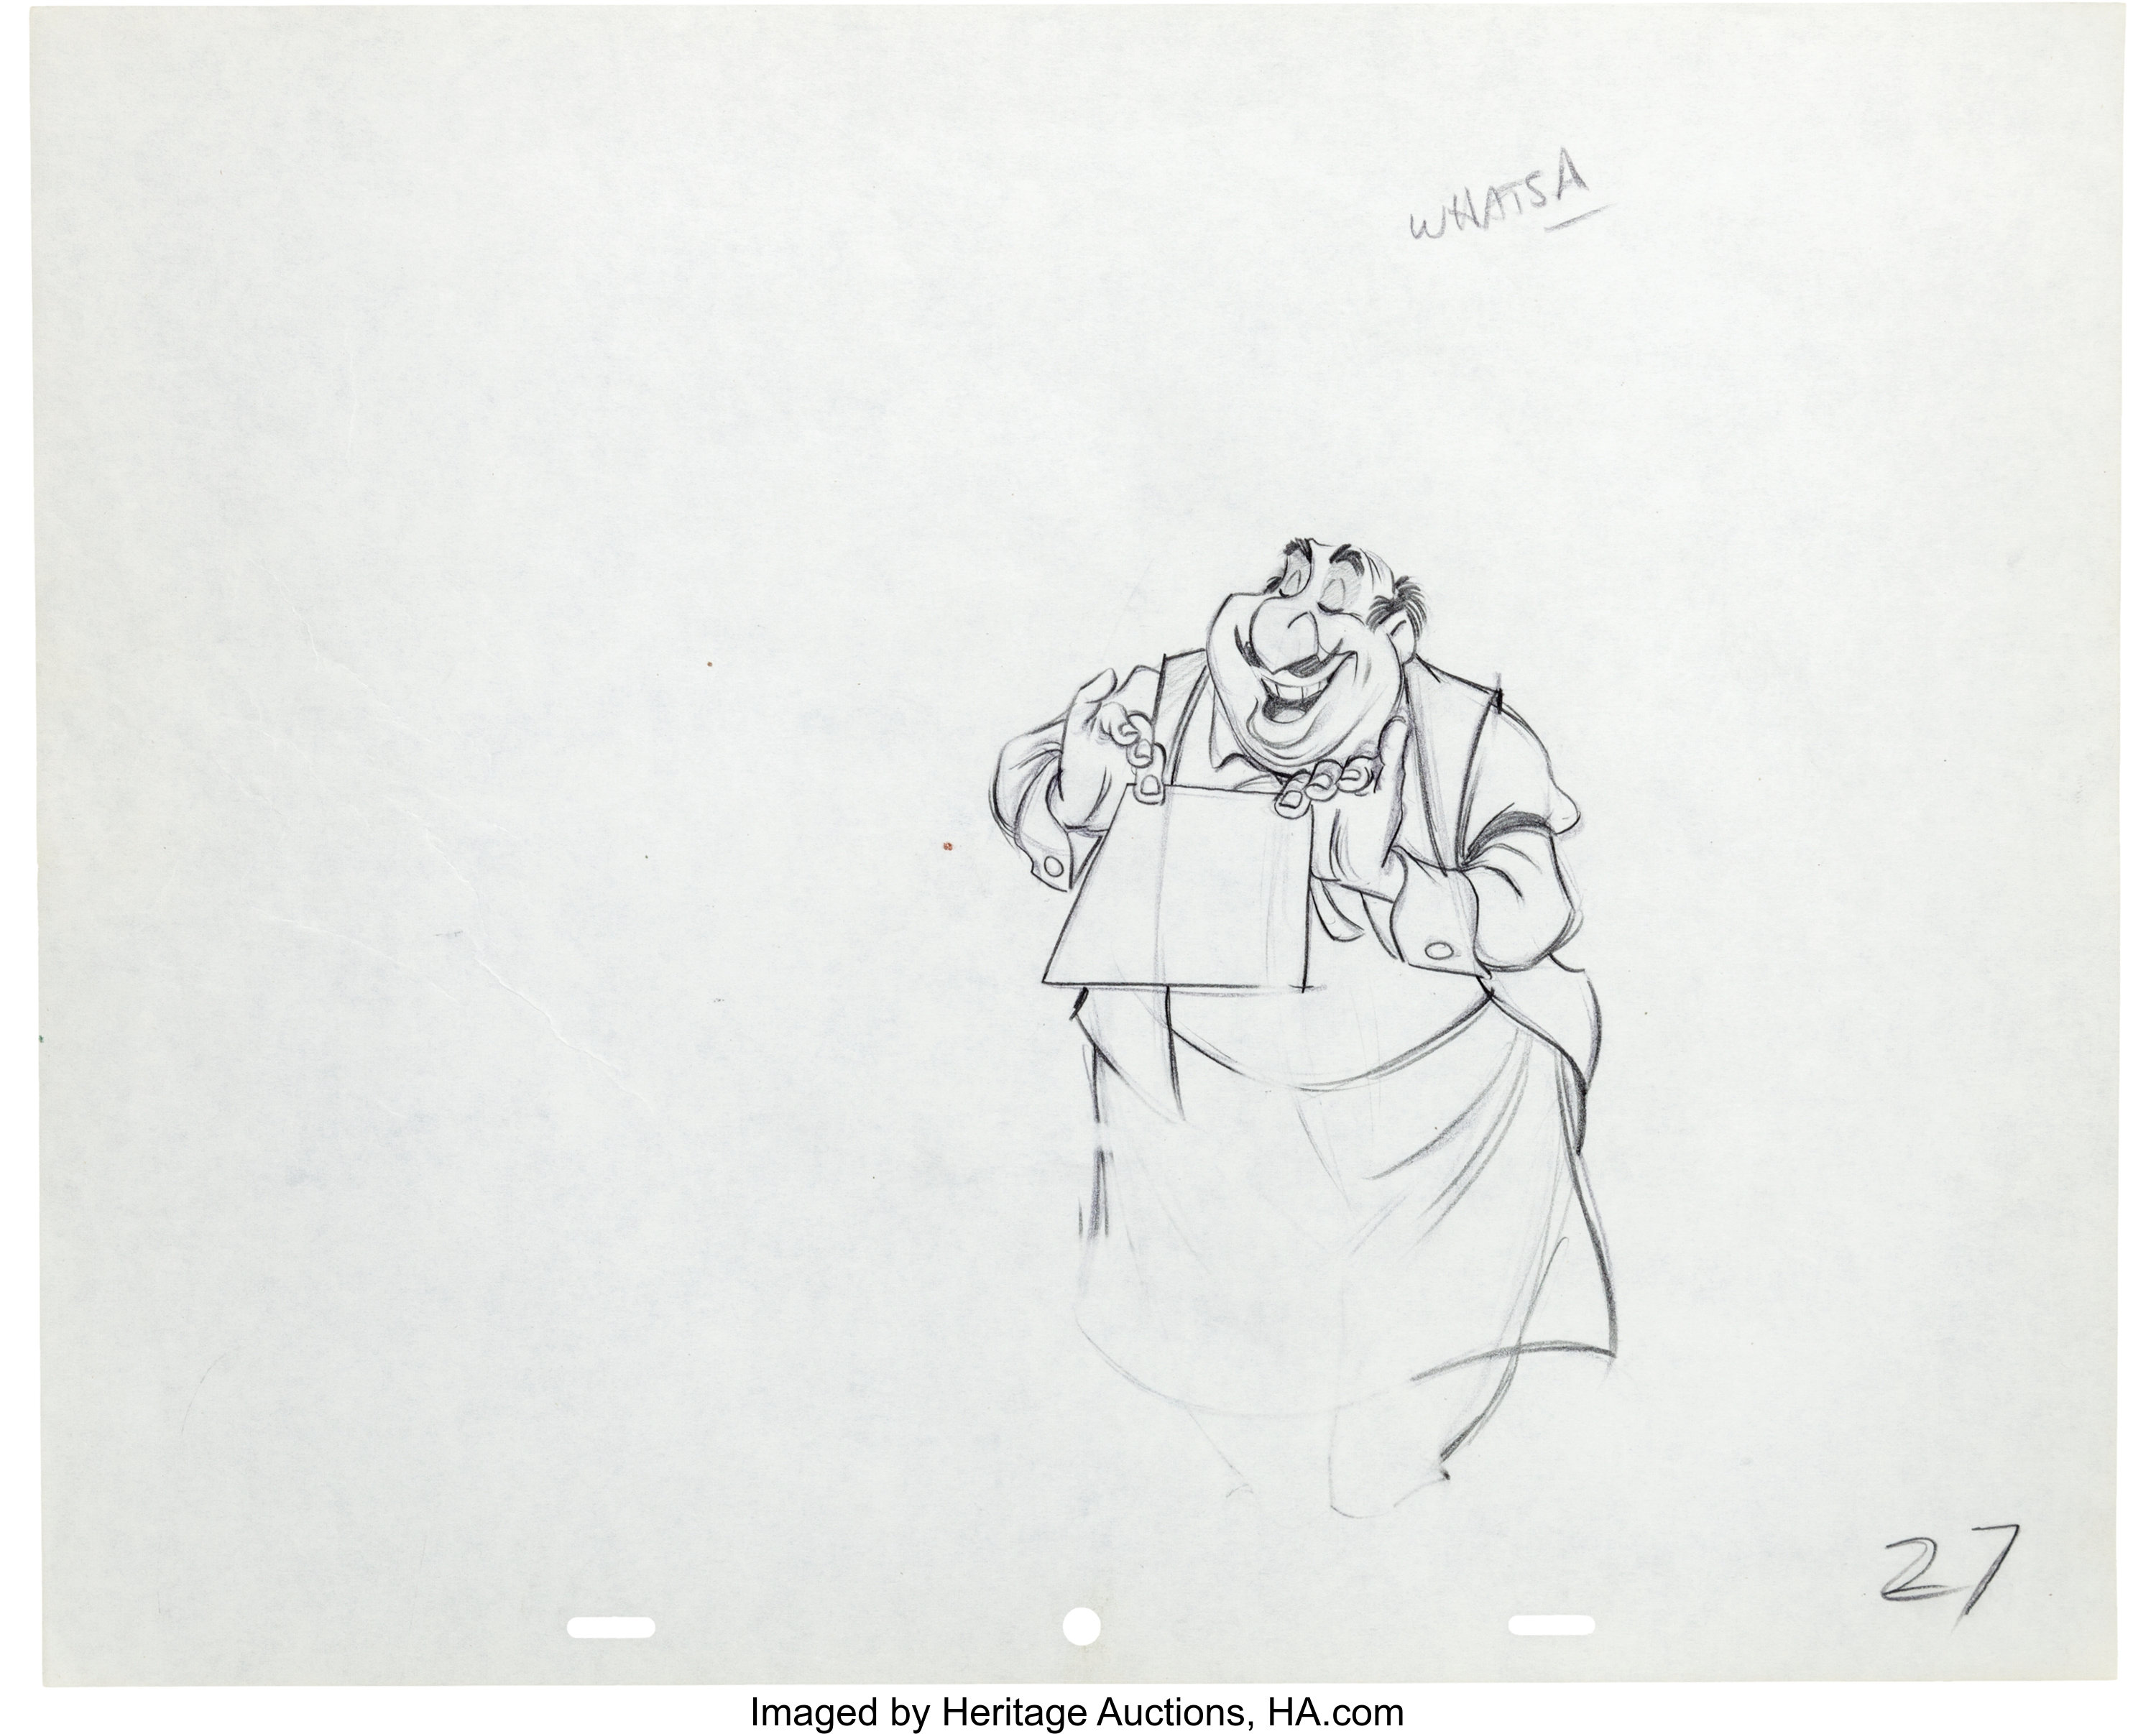 Lady And The Tramp Tony Animation Drawing Group Walt Disney Lot 95093 Heritage Auctions